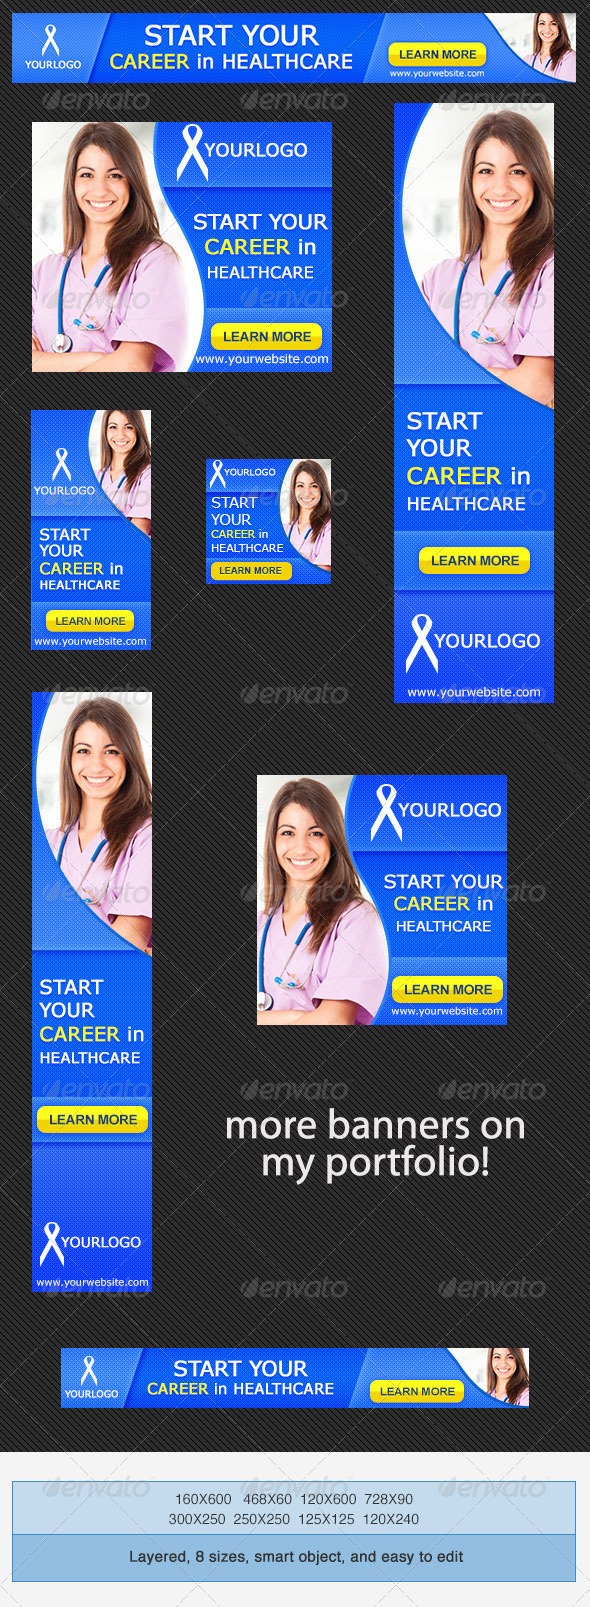 GraphicRiver Medical Carrer Bannerd Ad Template 3866476